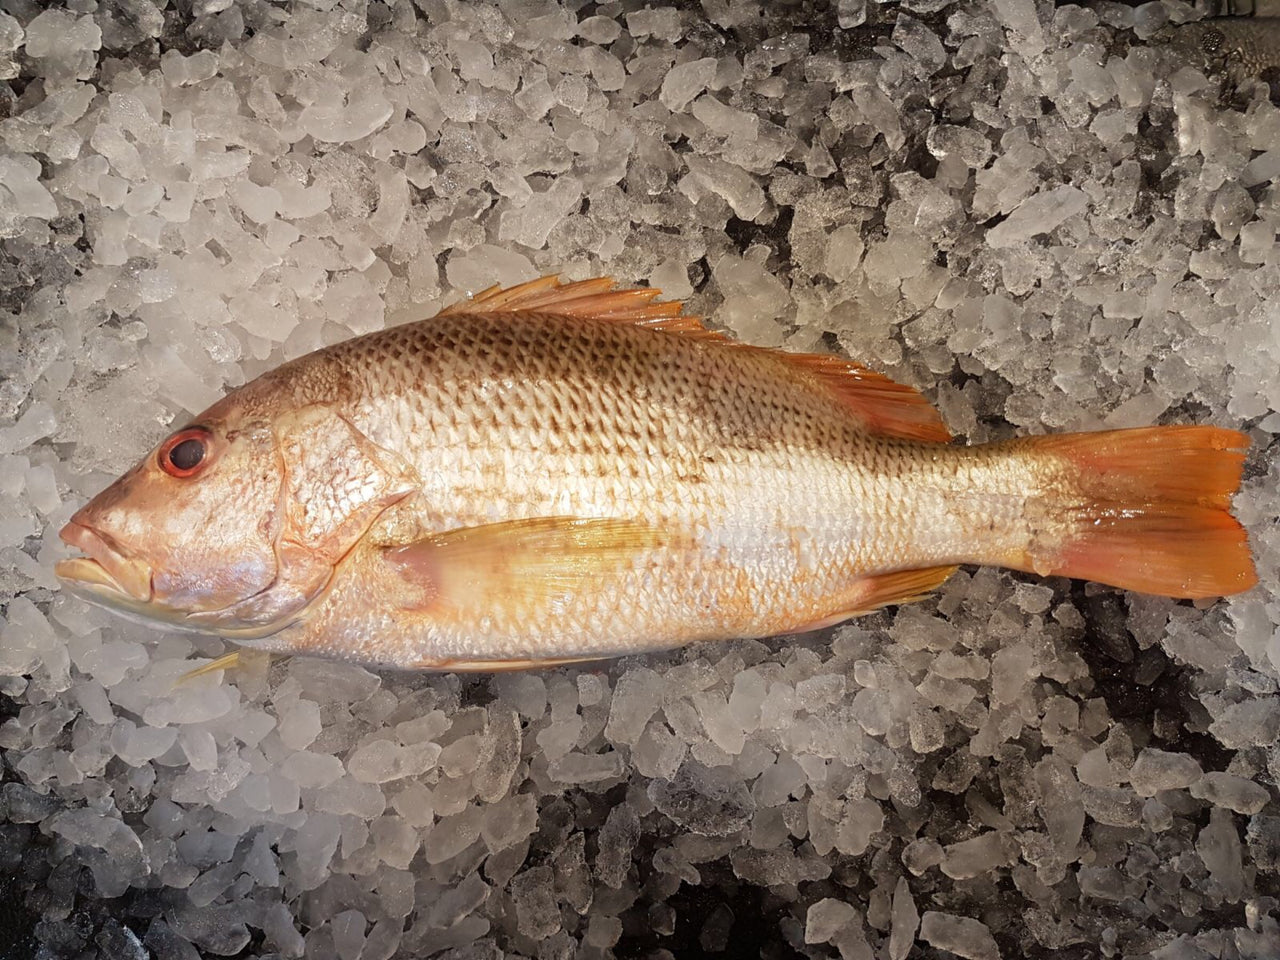 dishthefish The new age fishmonger wild caught Golden Snapper 红皂 fresh fish third generation fishmonger singapore fresh seafood supplier  新加坡 鲜鱼 海产 家户 小孩子 鱼片 鱼片汤 新鲜 鲜鱼 即用 巴刹 送货 方便 网购